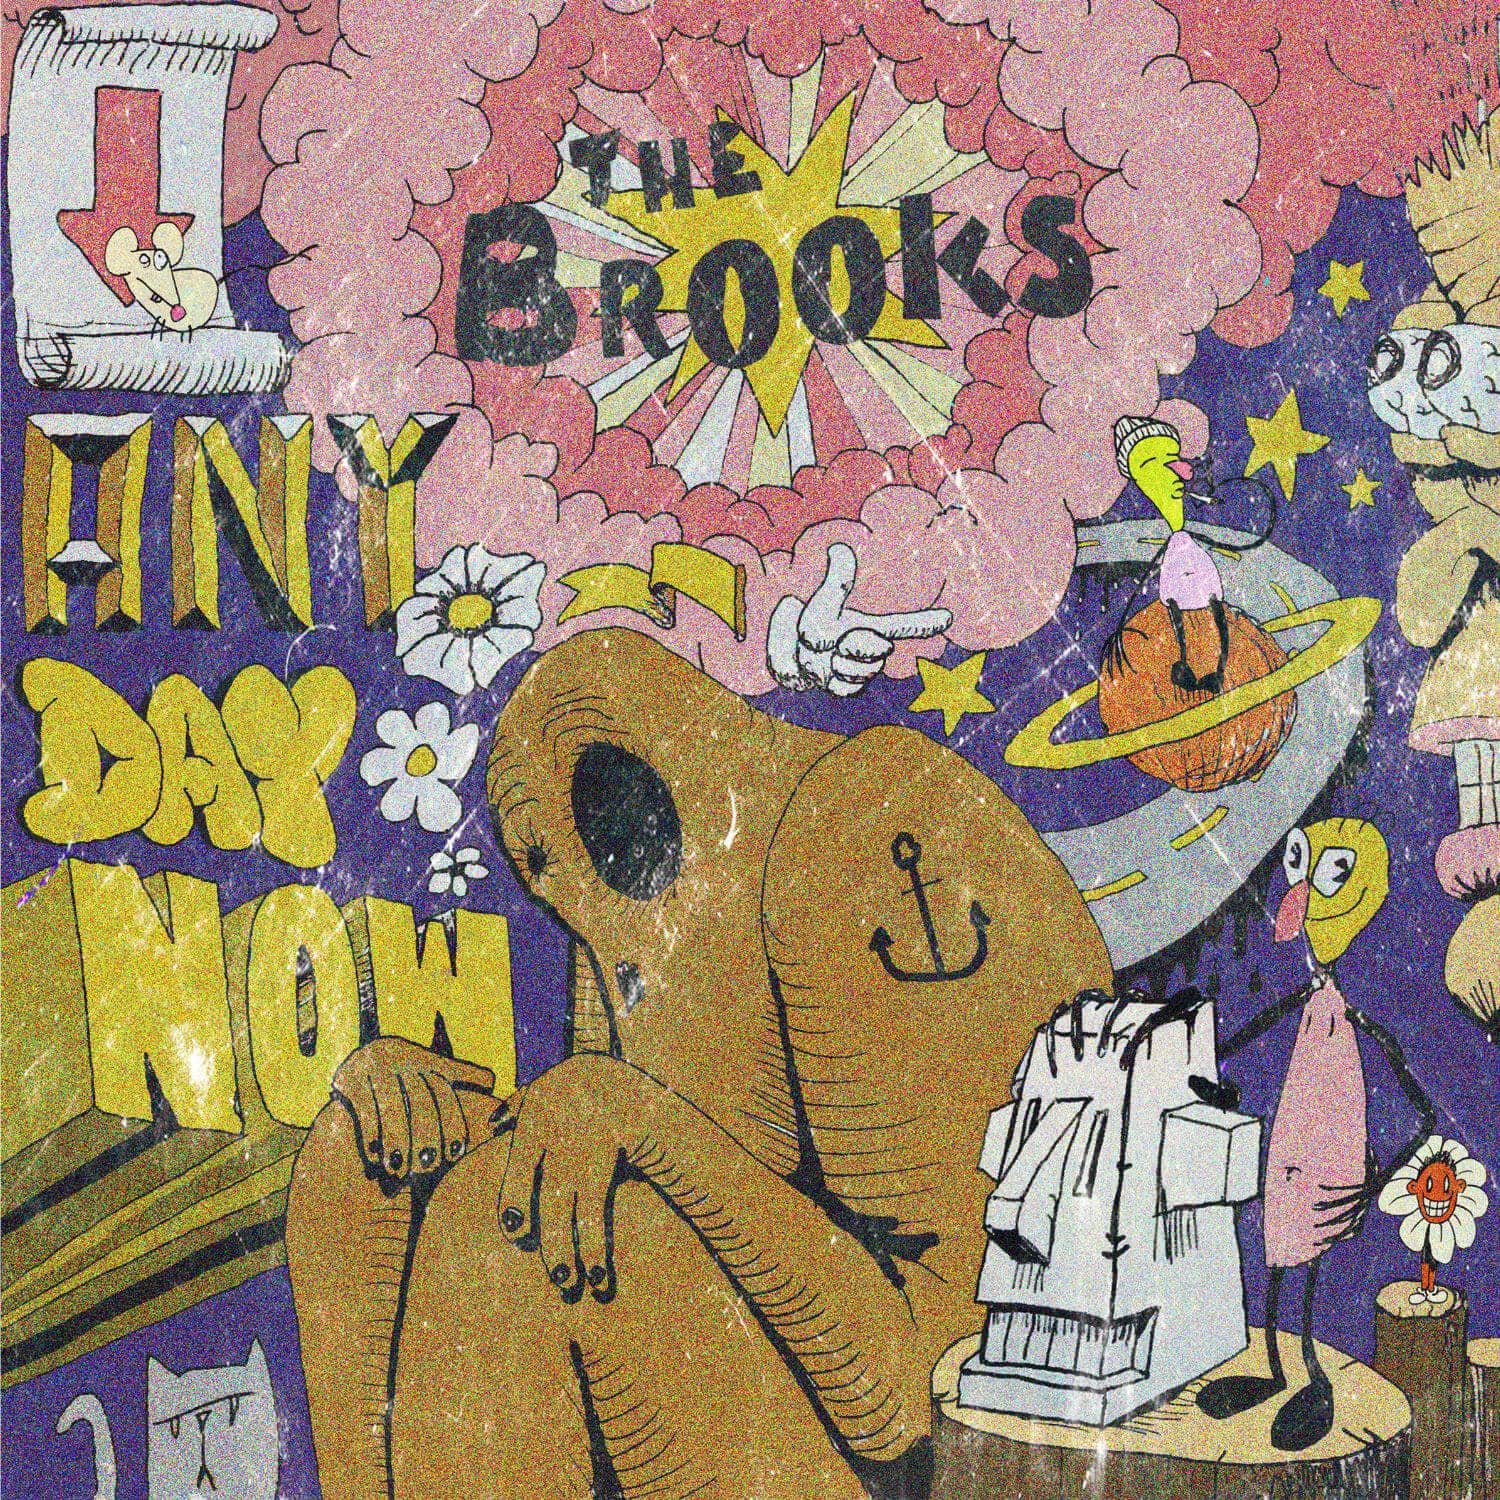 The Brooks wax buyers club anu day now front cover